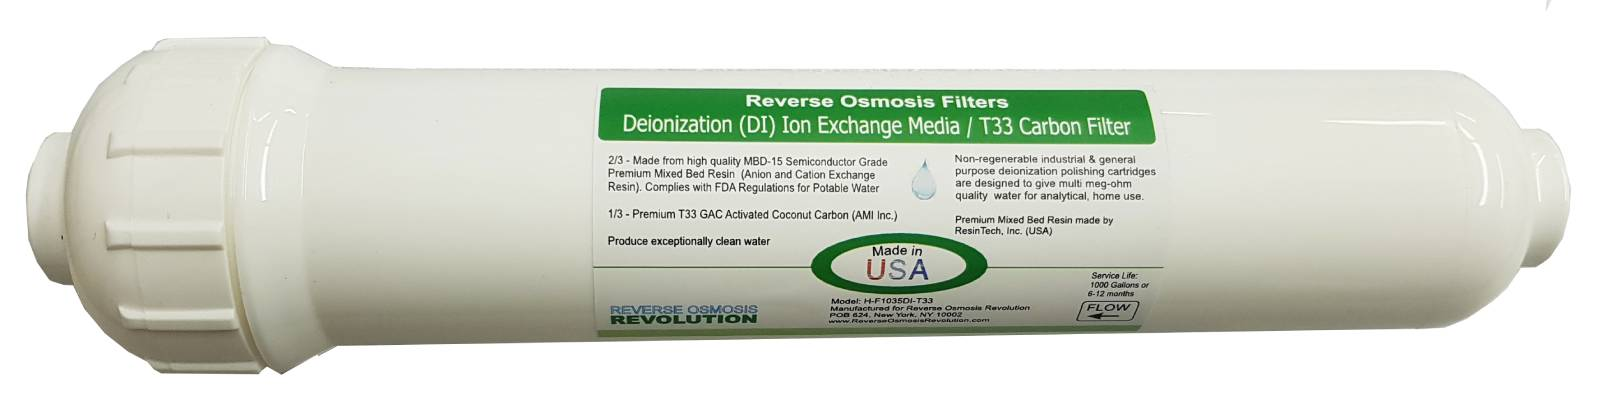 """Extra Capacity (11""""x2.5"""") Premium DI Ion Exchange Filter (0PPM), (2/3) and post GAC Carbon T33 (1/3)"""